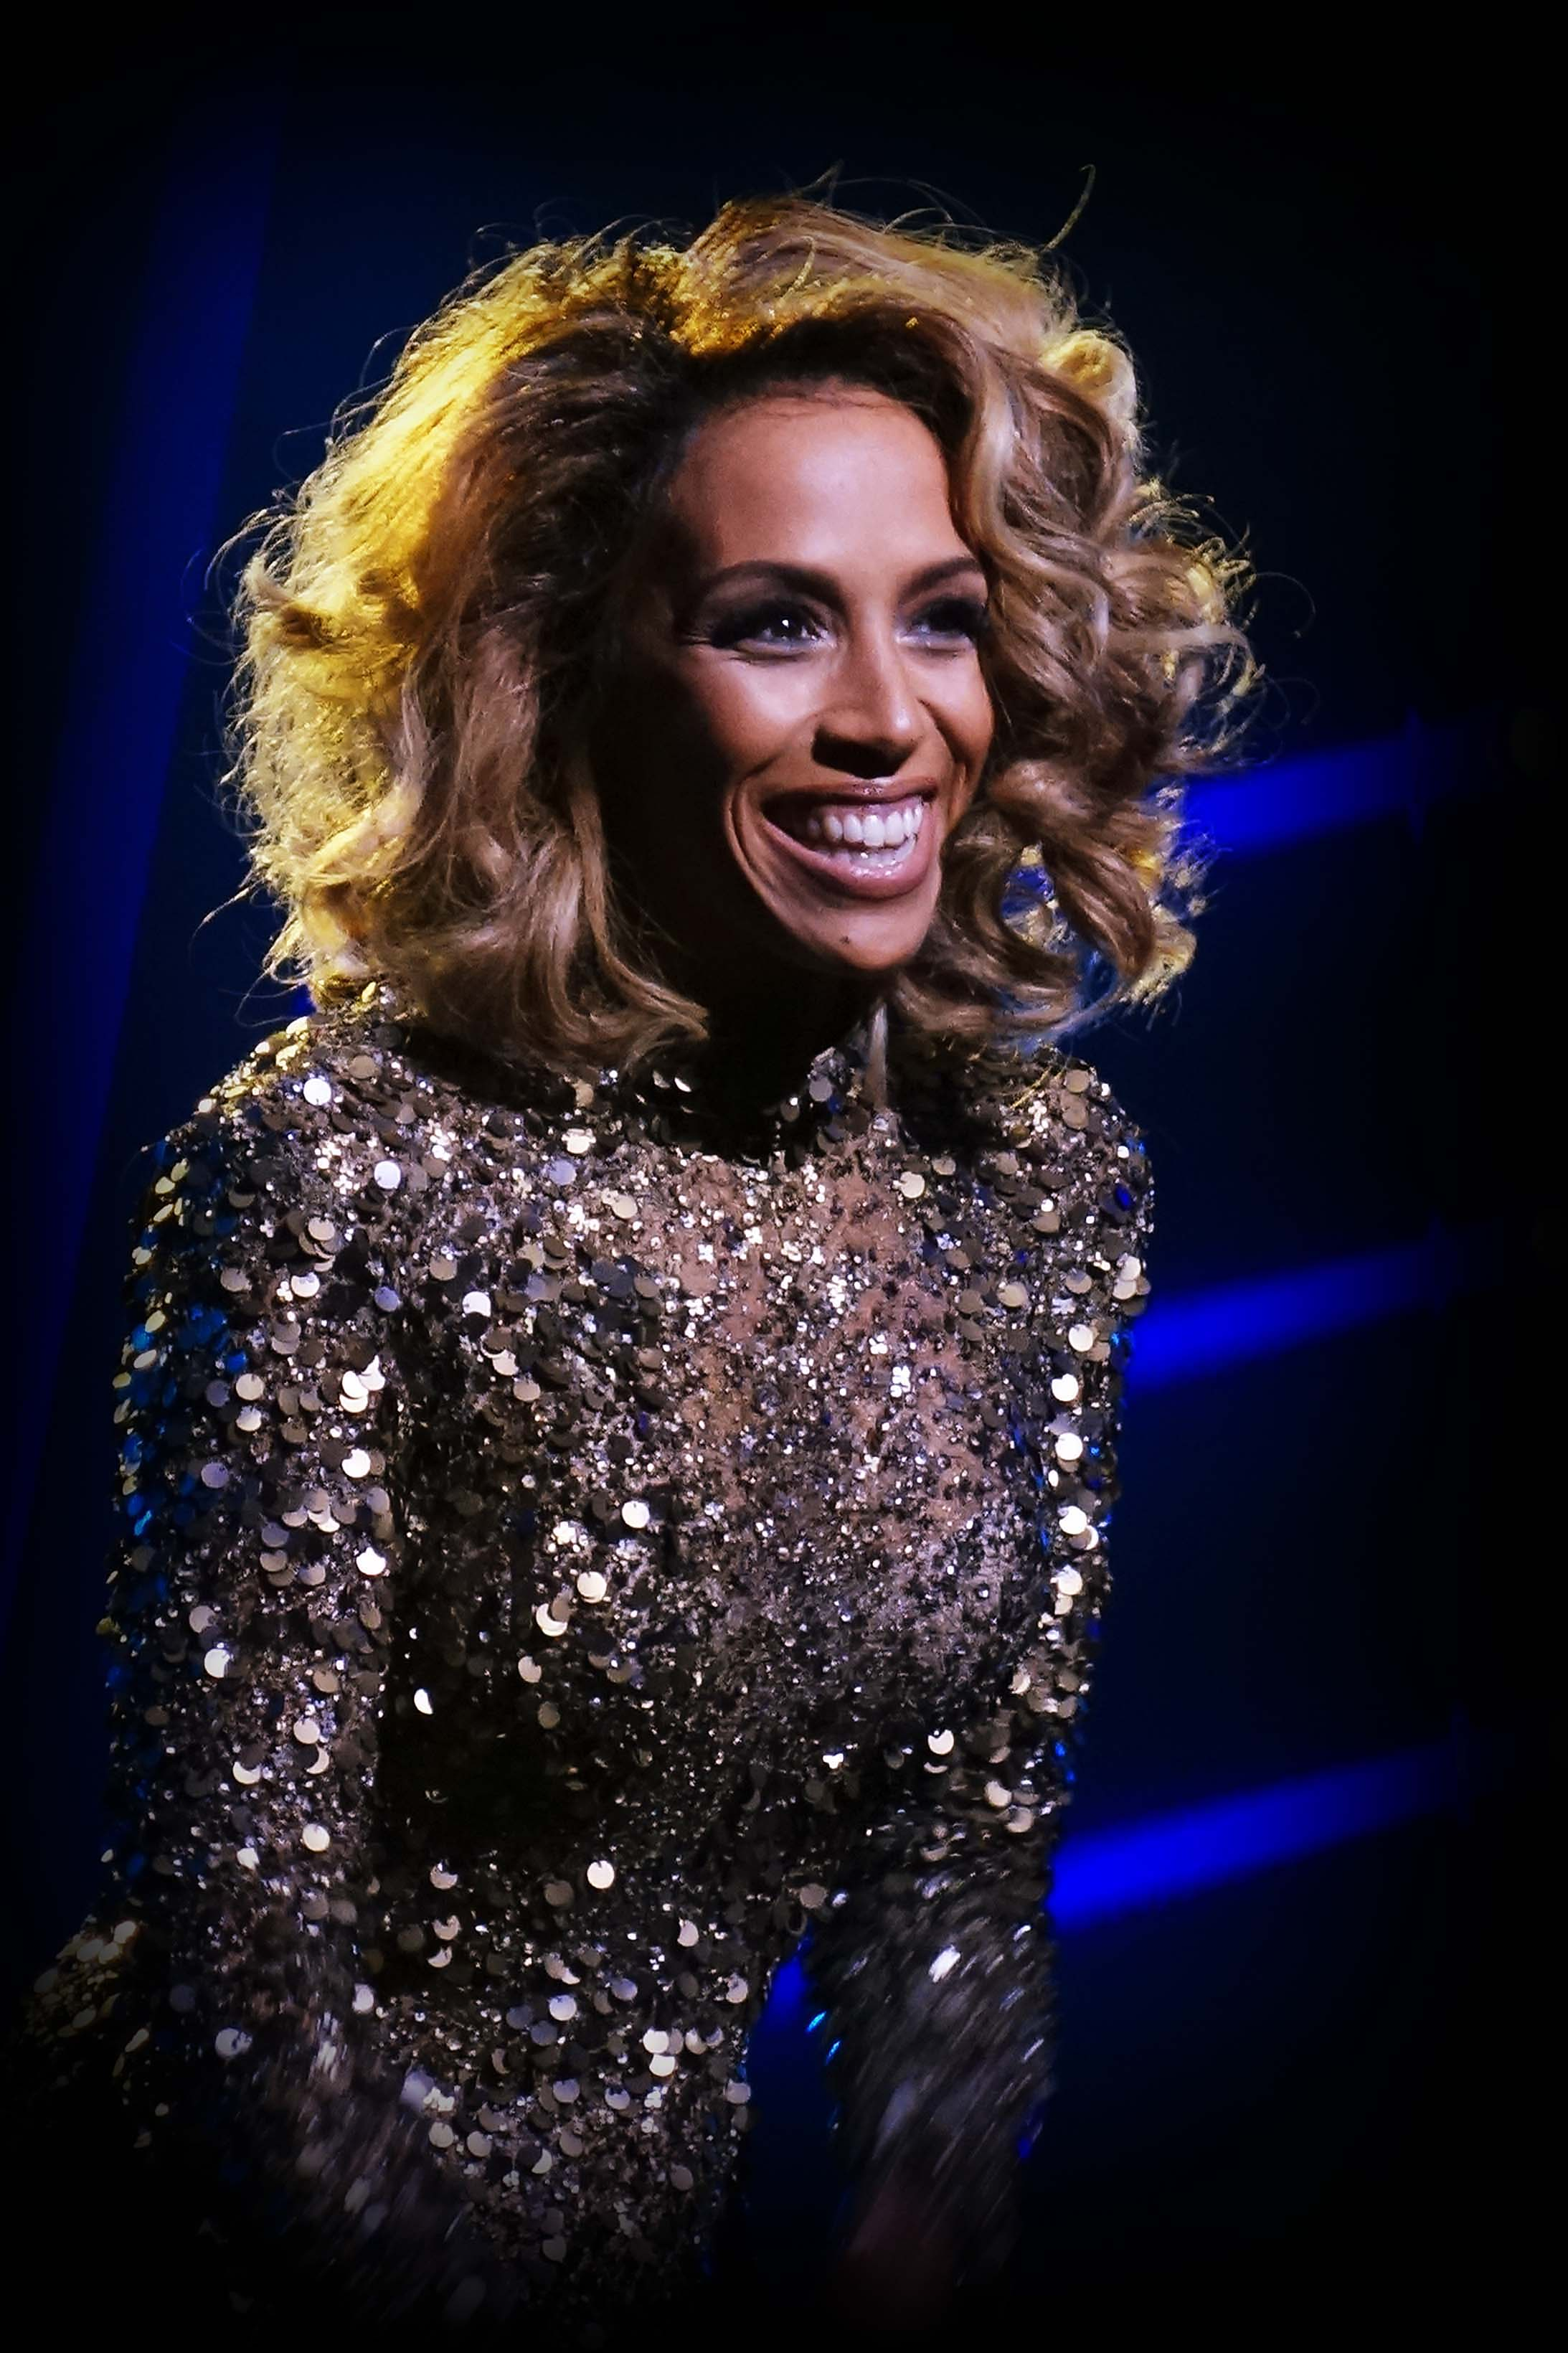 Glennis Grace © by Esther Elise de Heij